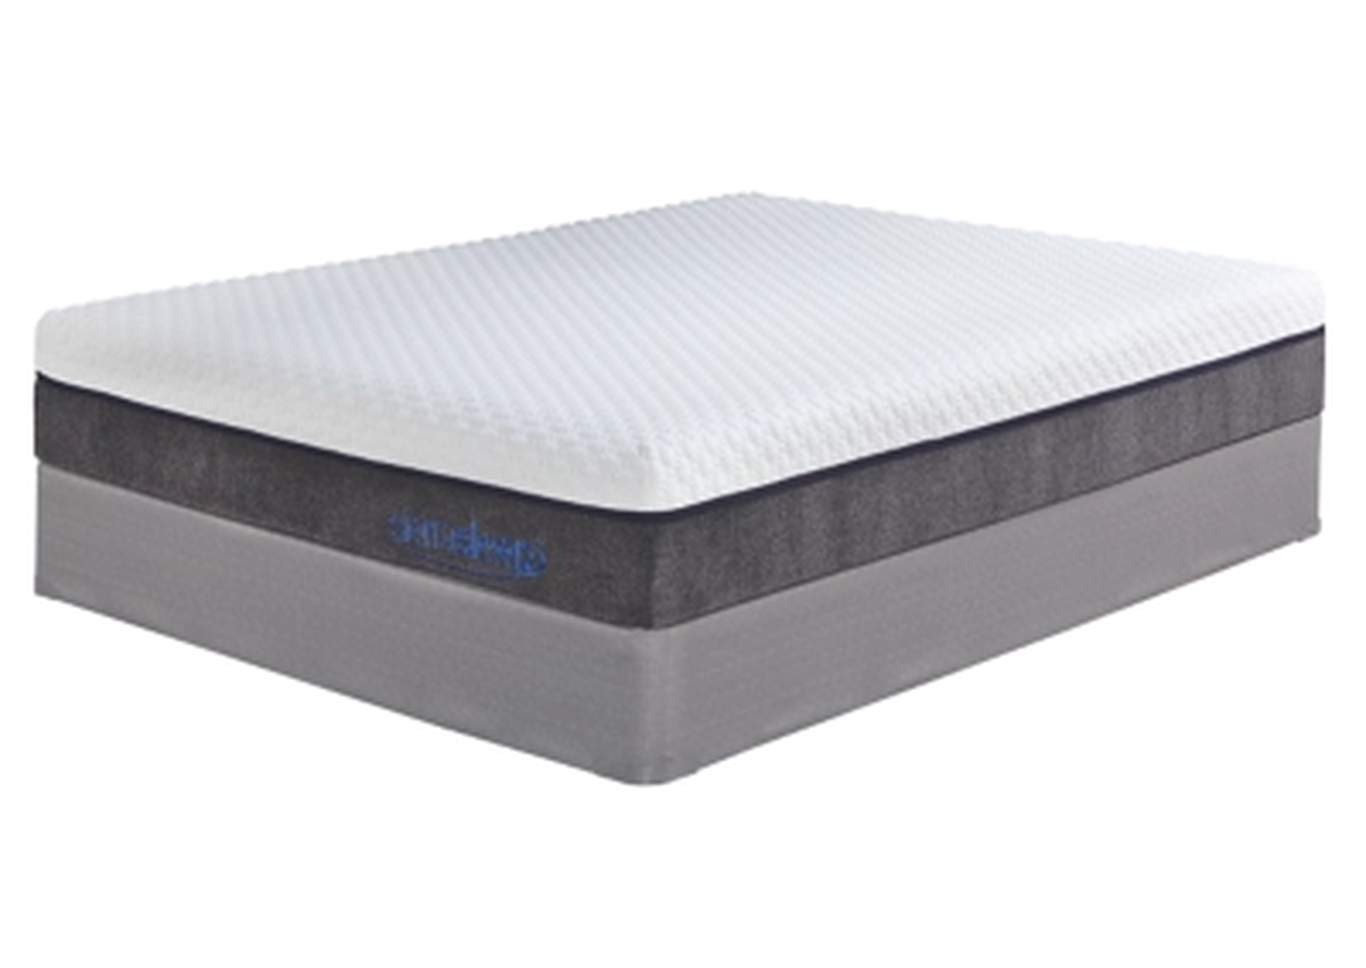 Mygel Hybrid 1100 Queen Mattress w/Foundation,Sierra Sleep by Ashley